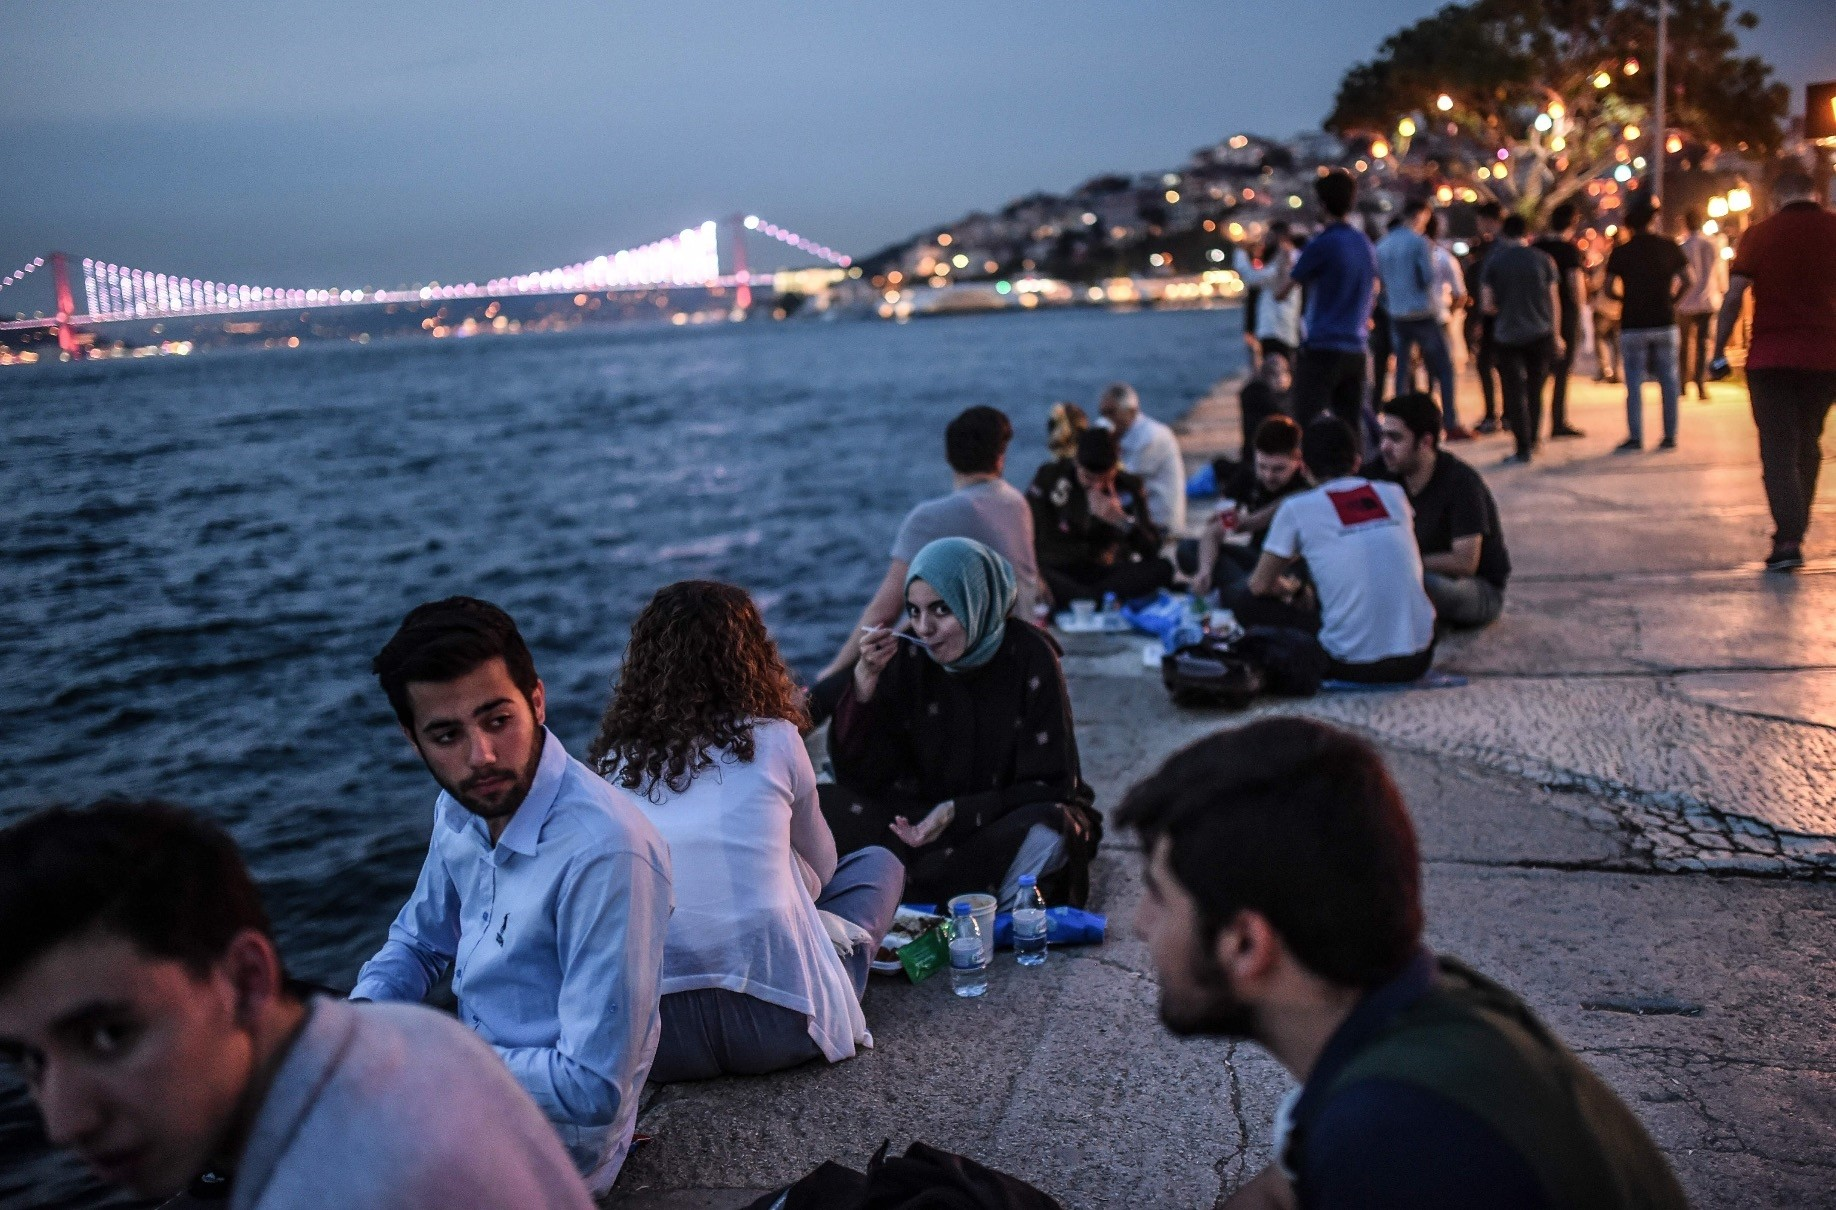 Although it has been considered one of the strongholds of the conservative people in Turkey for decades, u00dcsku00fcdar is actually one of the most cosmopolite districts in Istanbul with a range of people hailing from different backgrounds.